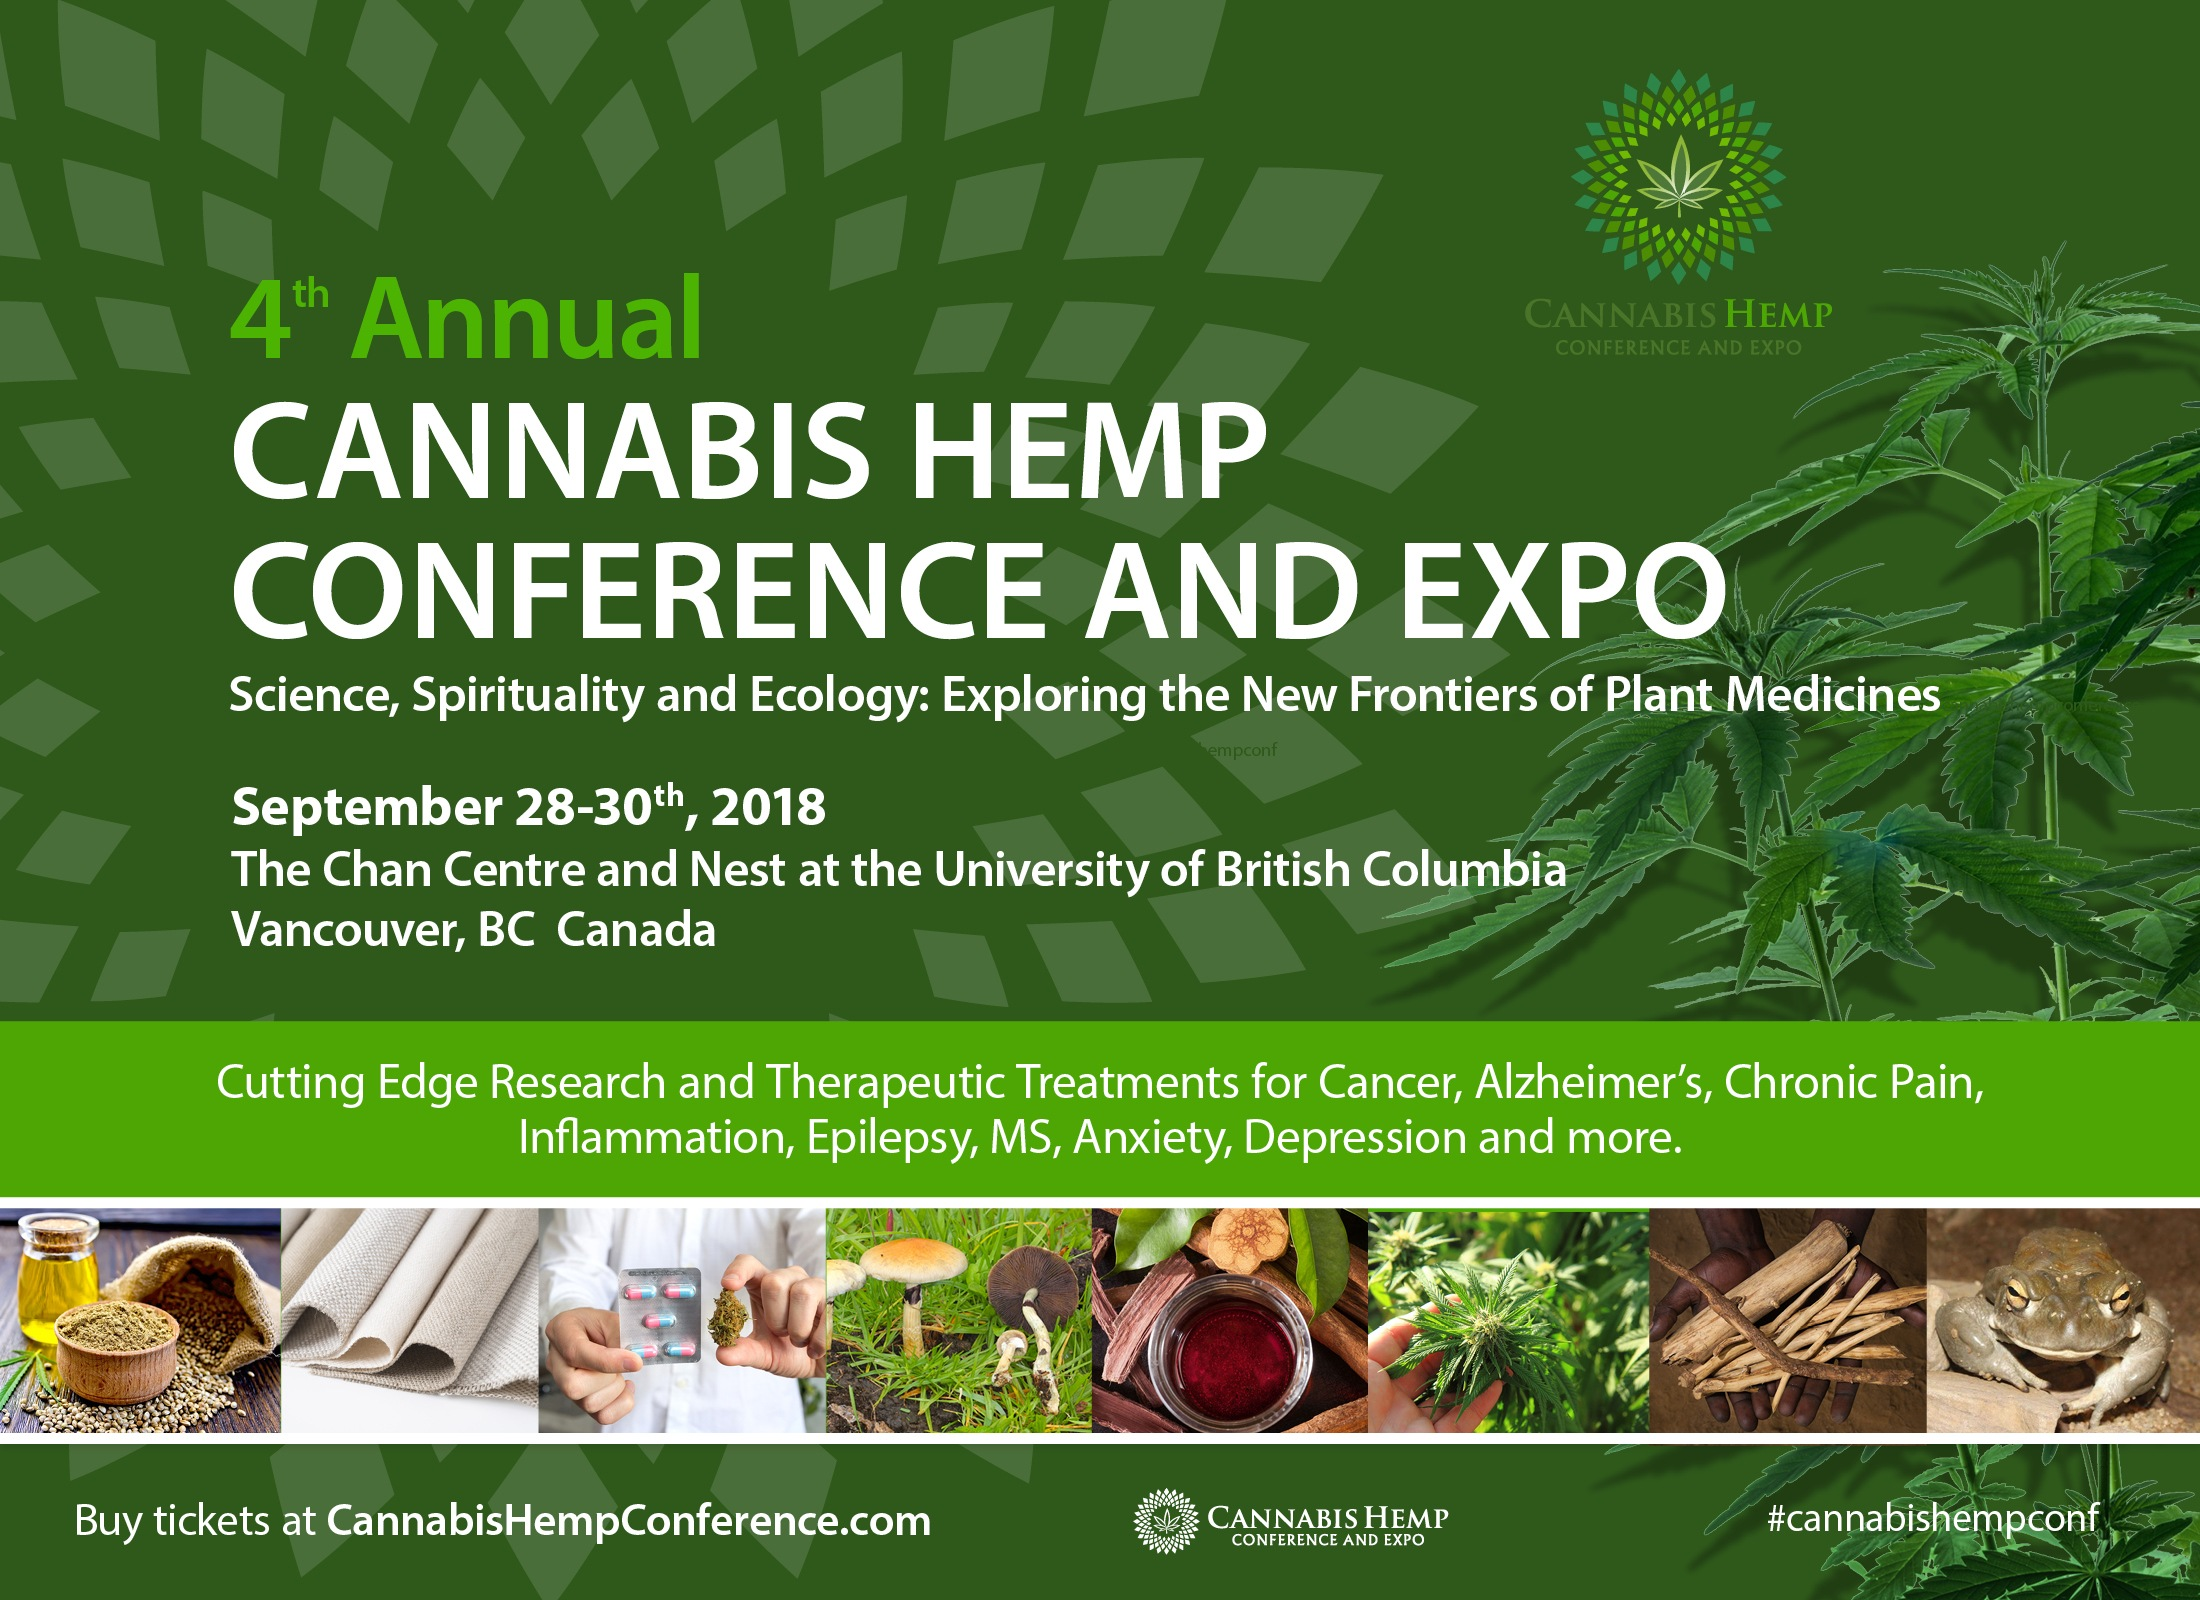 Cannabis Hemp Conference and Expo